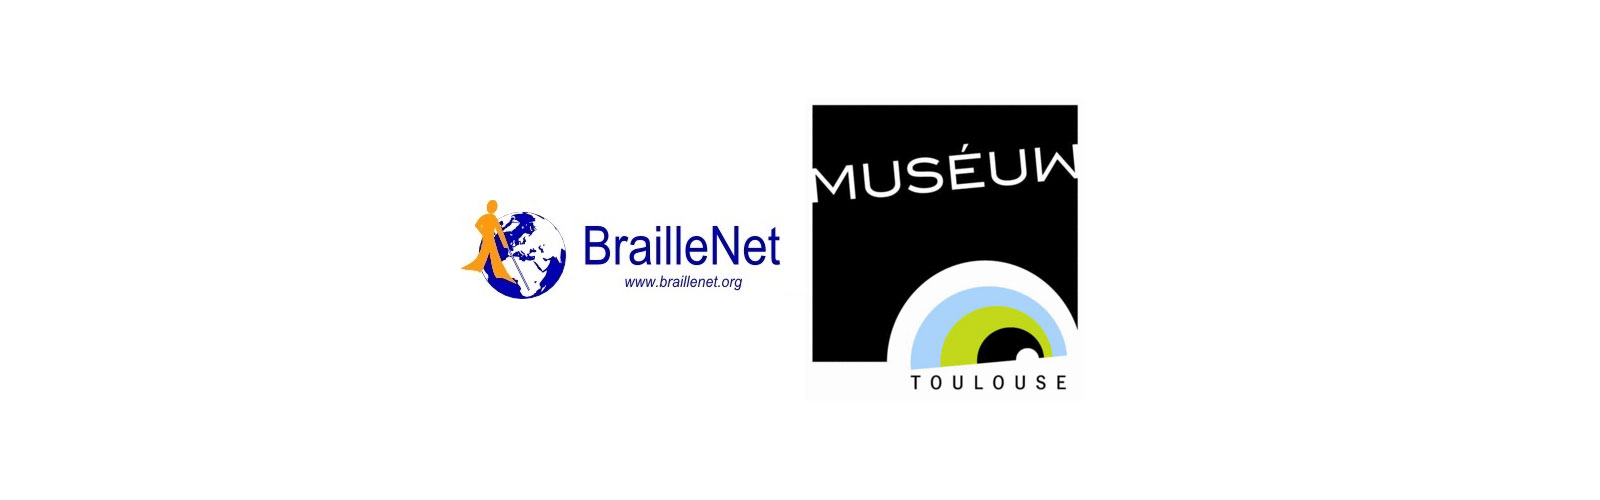 braillenet-museum-toulouse